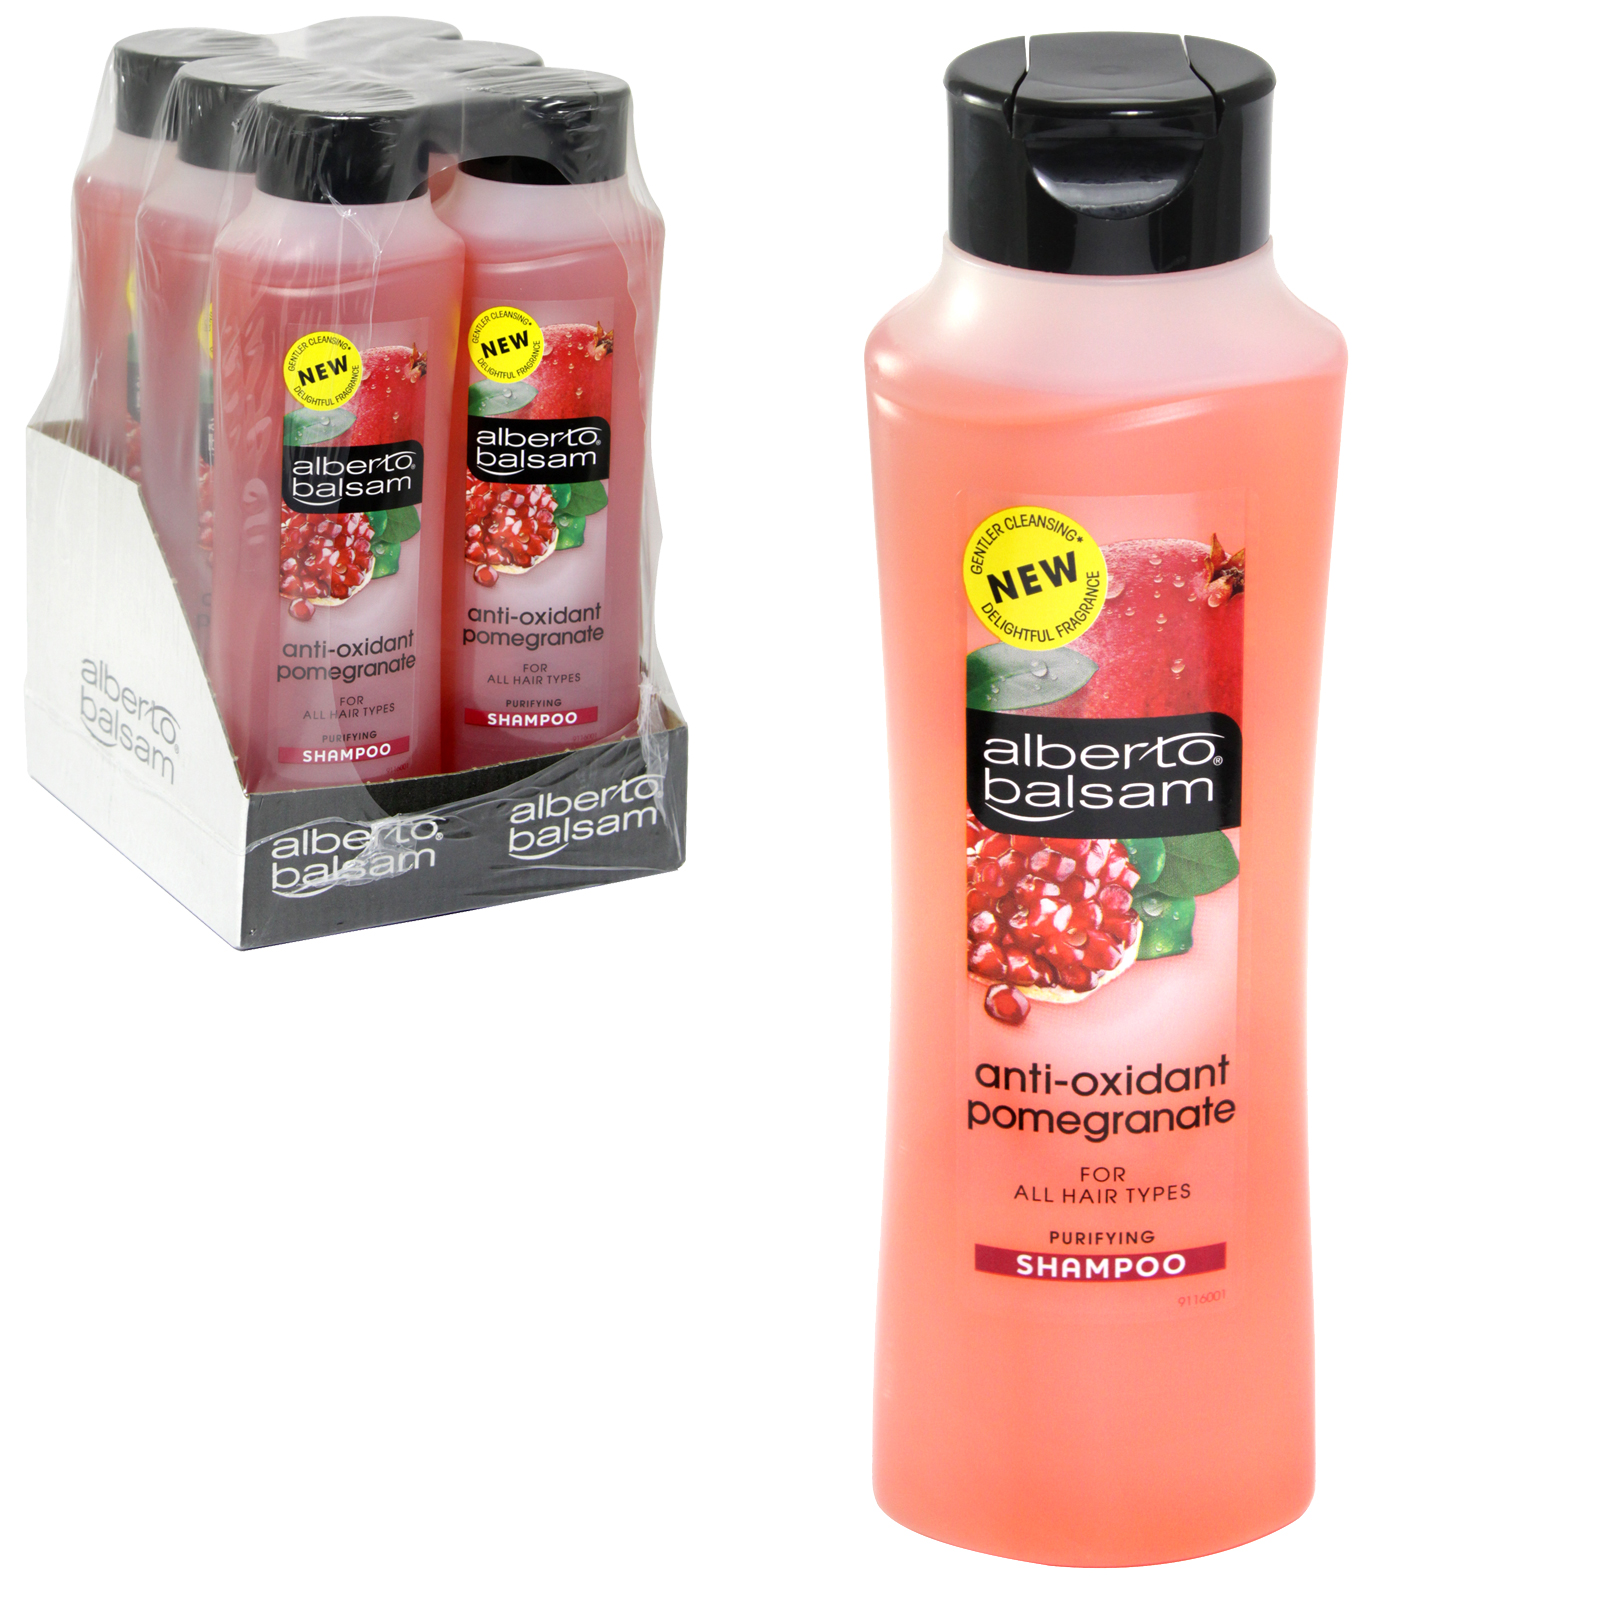 ALBERTO BALSAM SHAMPOO 350ML ANTI-OXIDANT POMEGRANATE X6